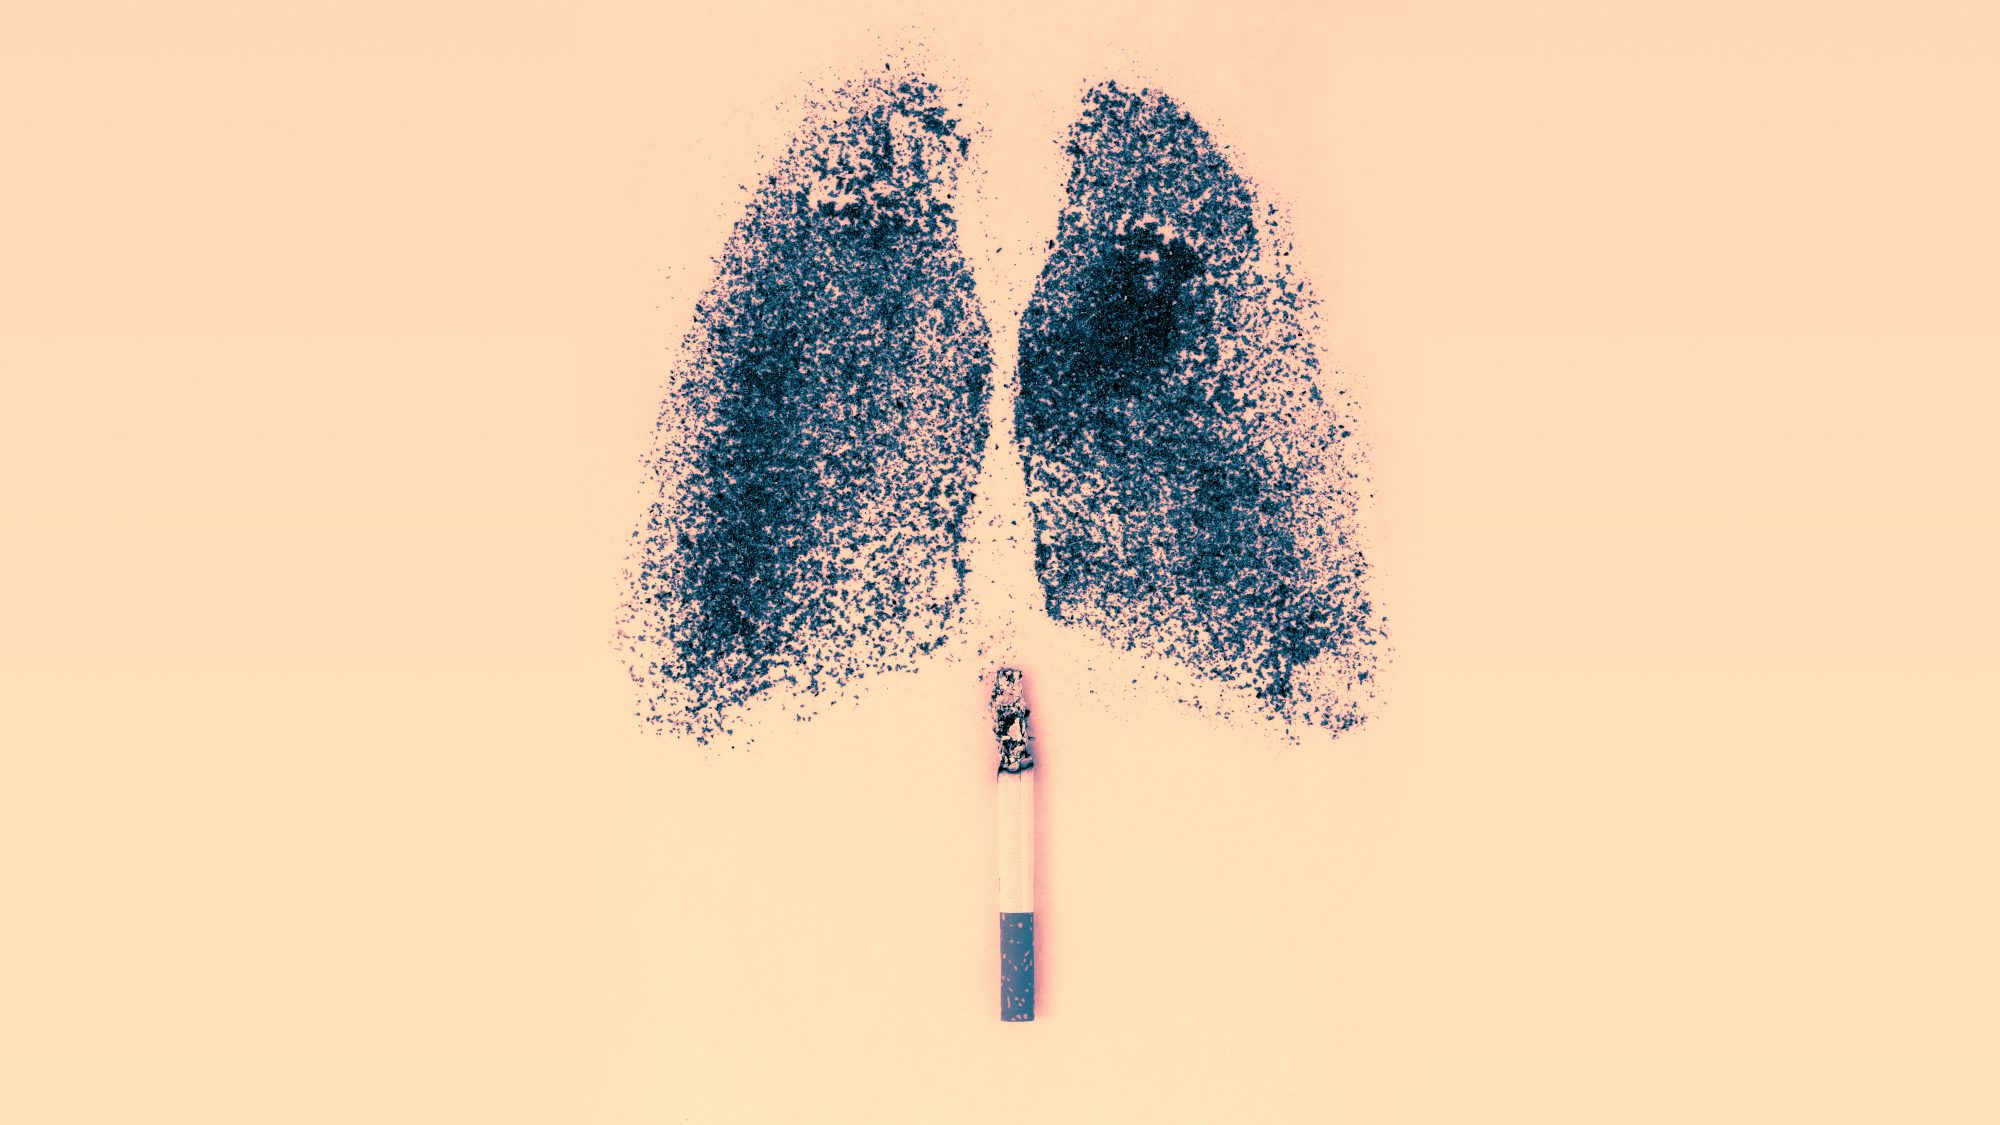 Lung Cancer and COPD Turned This Person's Lungs Completely Black